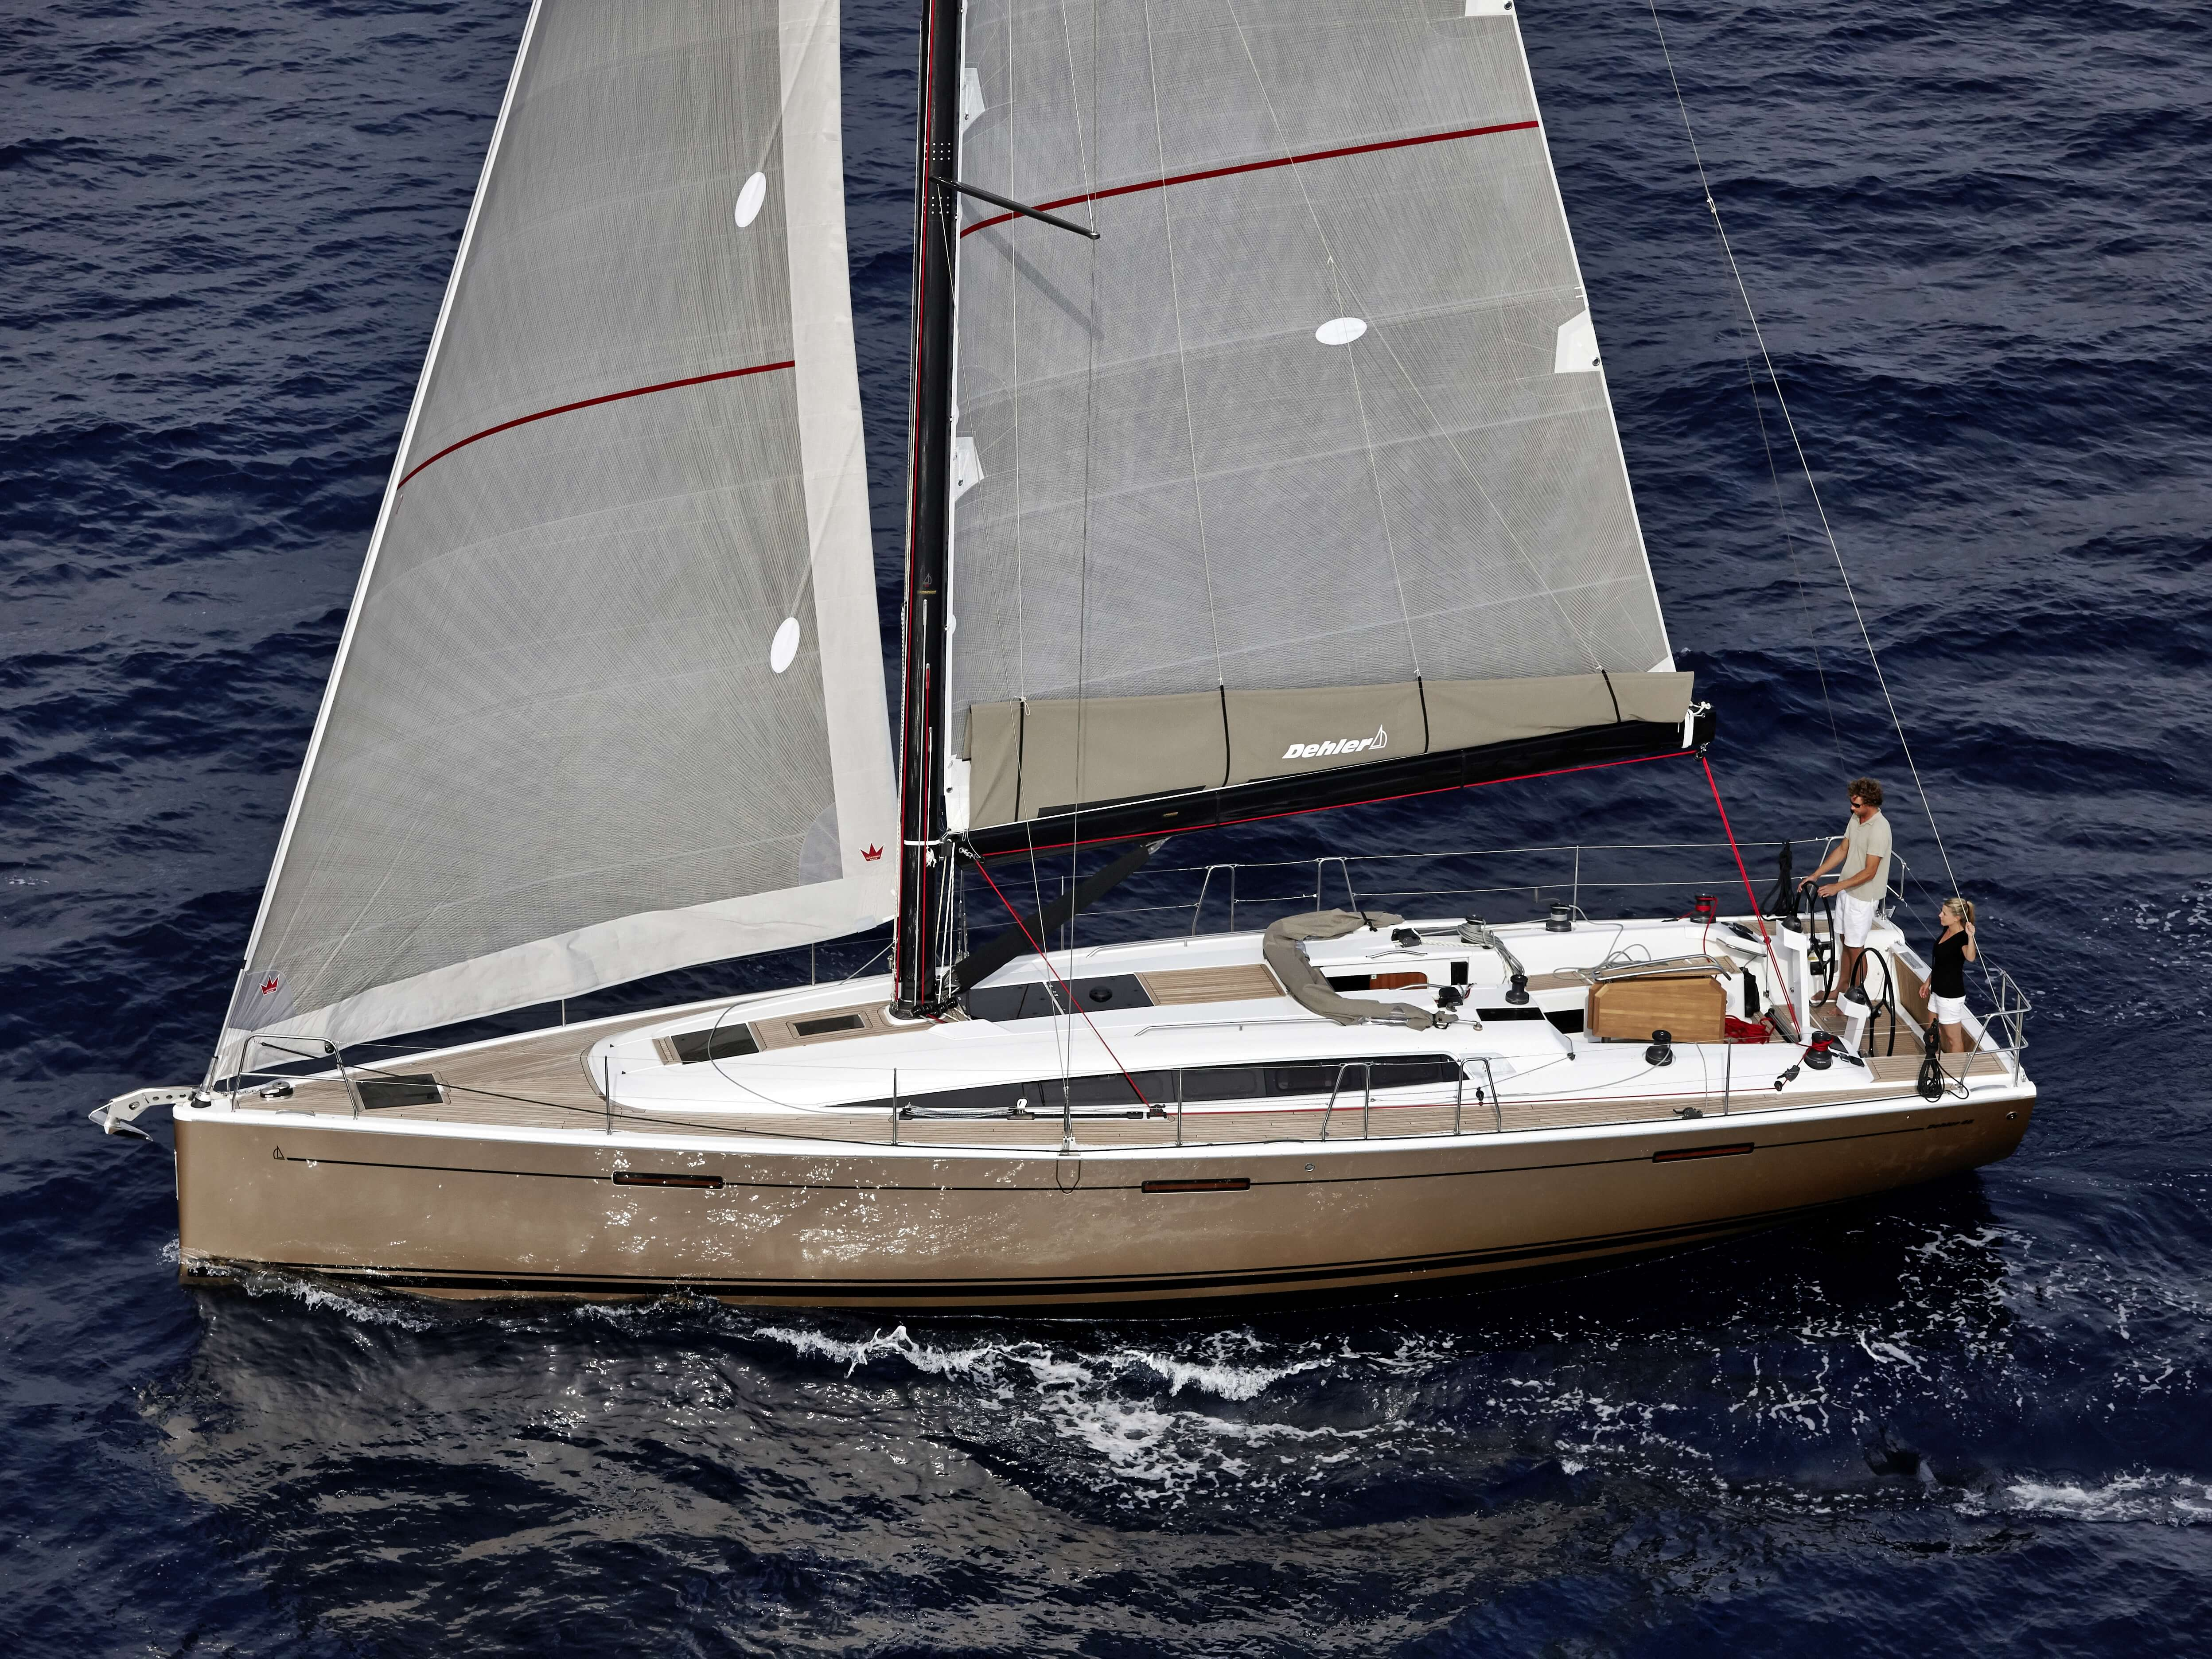 Dehler 46 Exterior at anchor | forsesail, mainsail, cockpit | Dehler